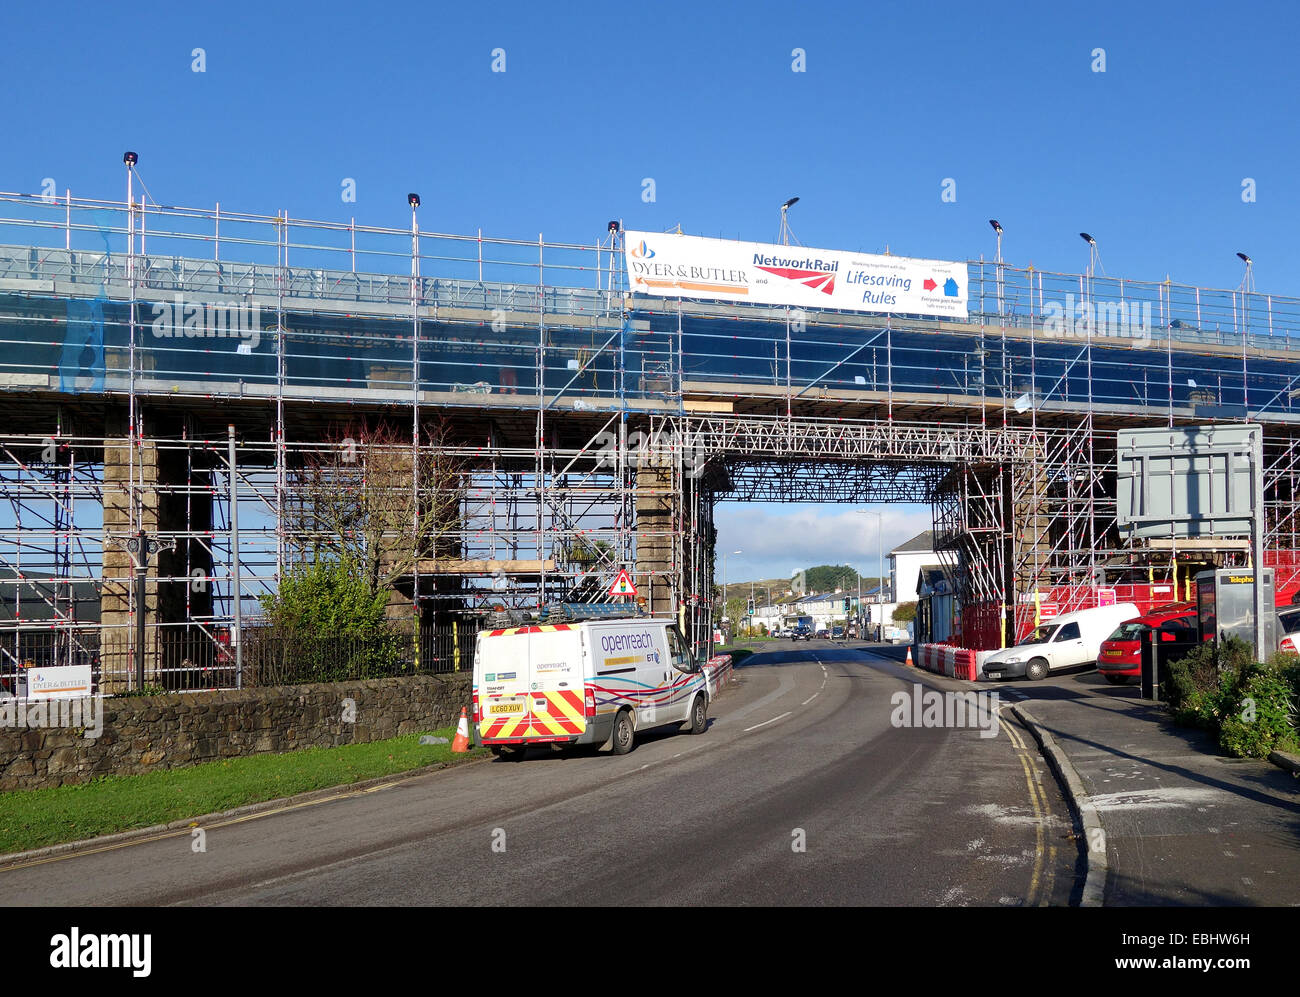 Railway viaduct at Hayle in Cornwall, UK, undergoing structural repairs - Stock Image